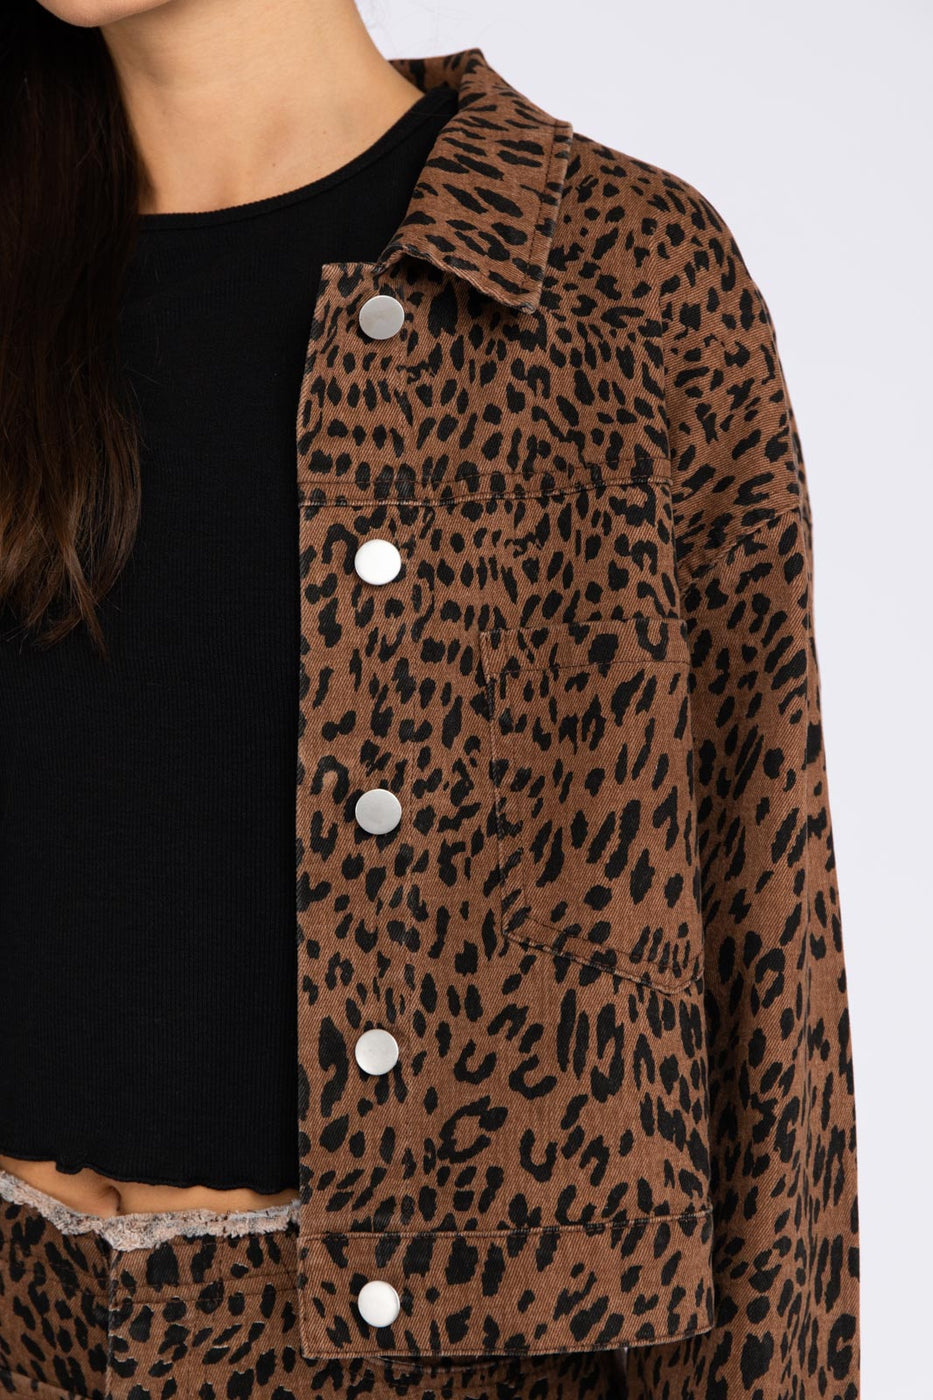 Animal Print Denim Jacket In Brown Leopard Siin Bees